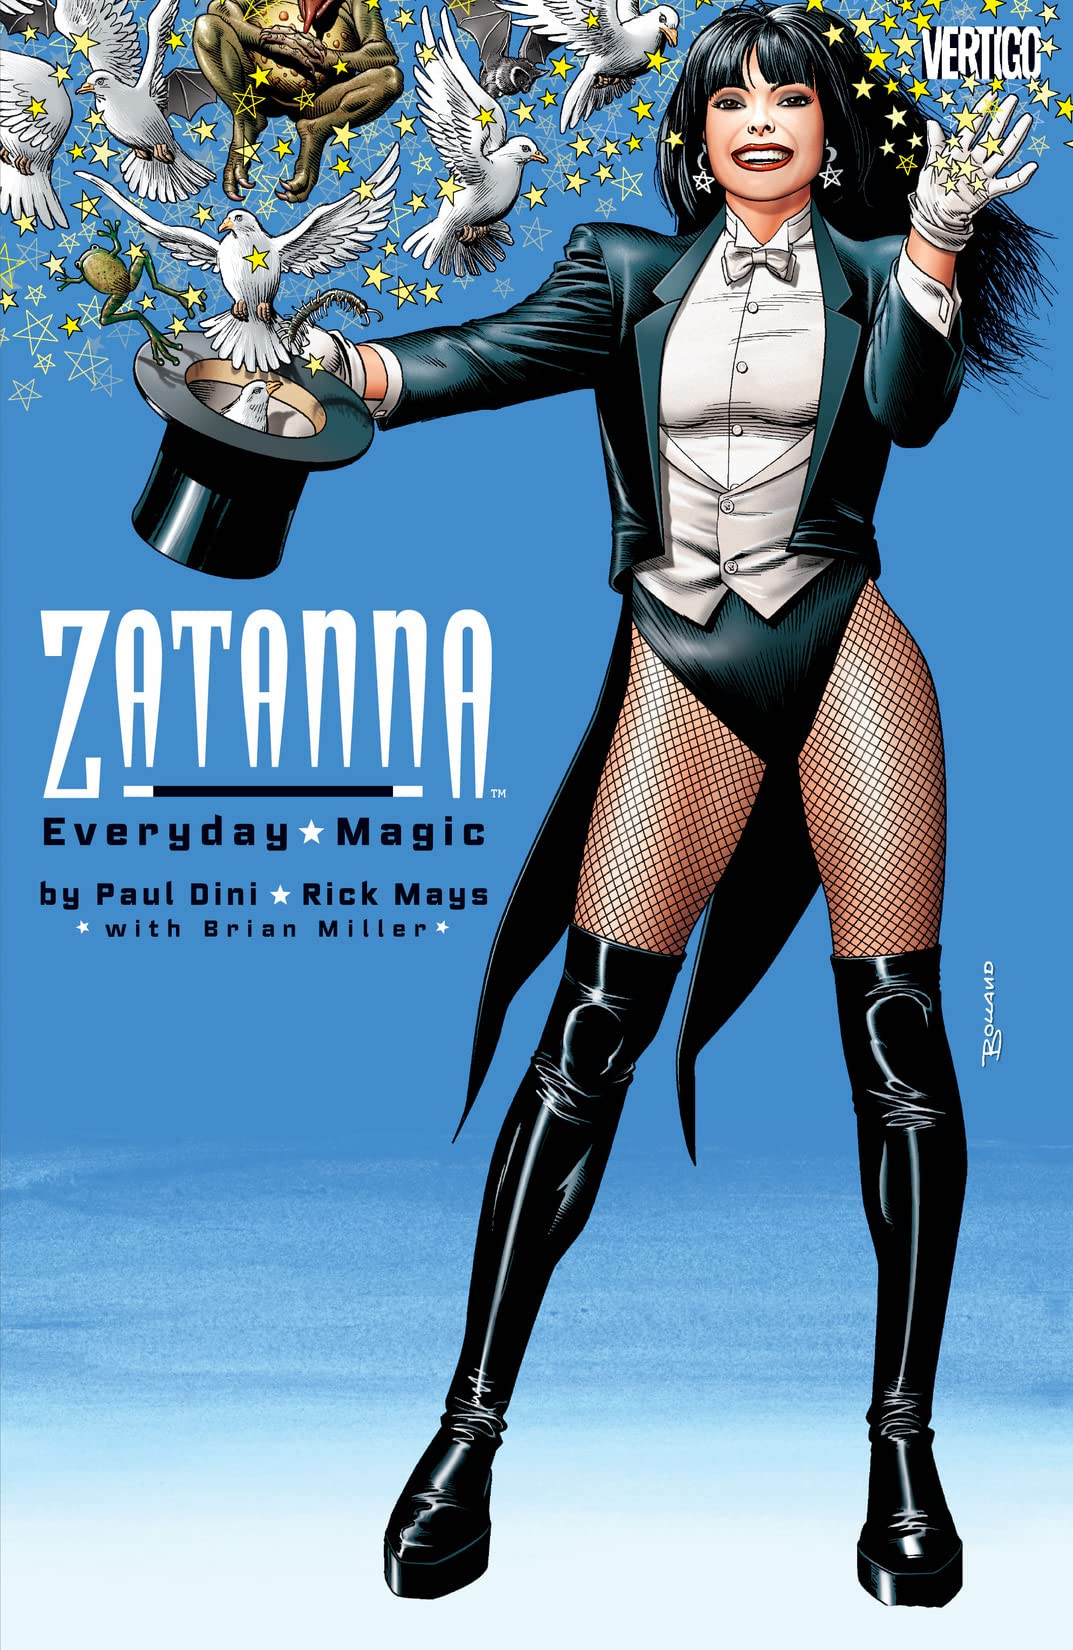 Zatanna: Everyday Magic (2003) #0